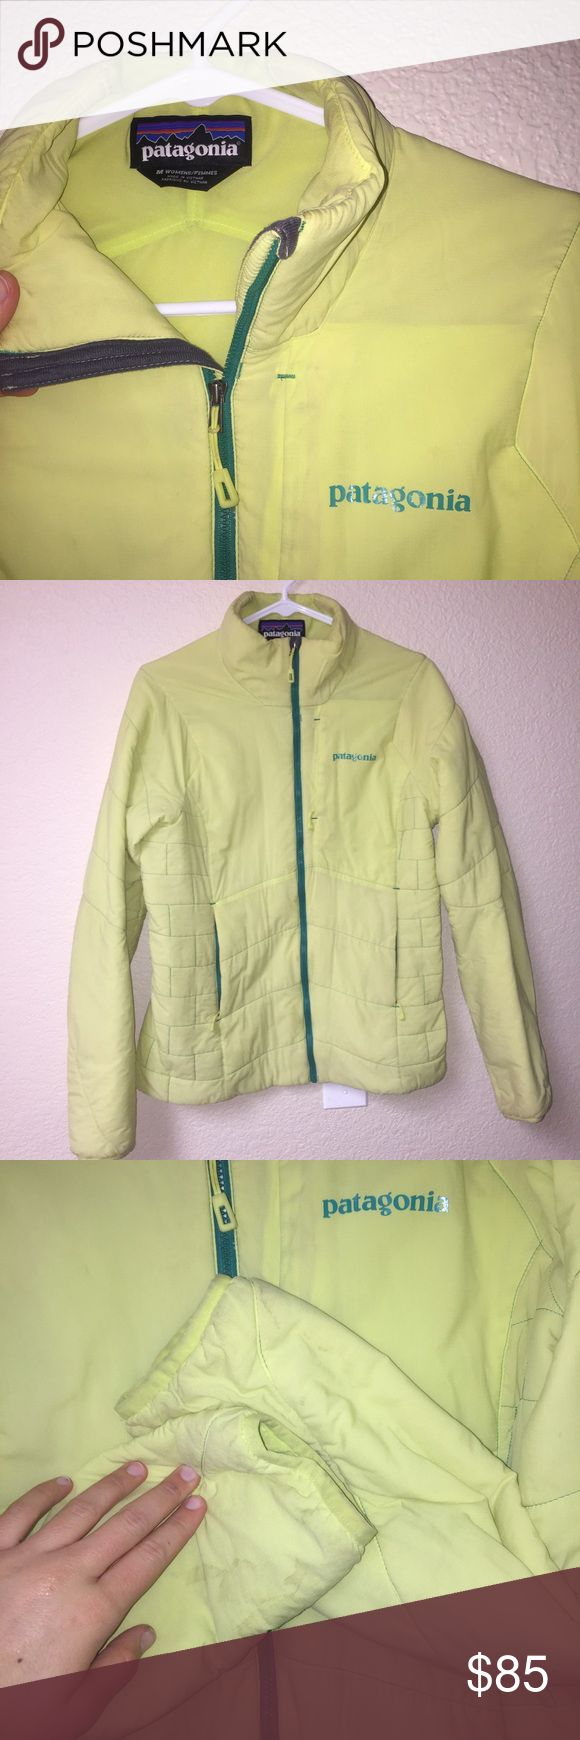 Patagonia women's nano-air zip up Last seasons colors. Yellow and green. Really good looking jacket and so comfortable. In perfect condition aside from some dirty spots on the jacket from skiing last year. Would definitely come out in the wash. Jackets is warm and super awesome! Patagonia Jackets & Coats Puffers